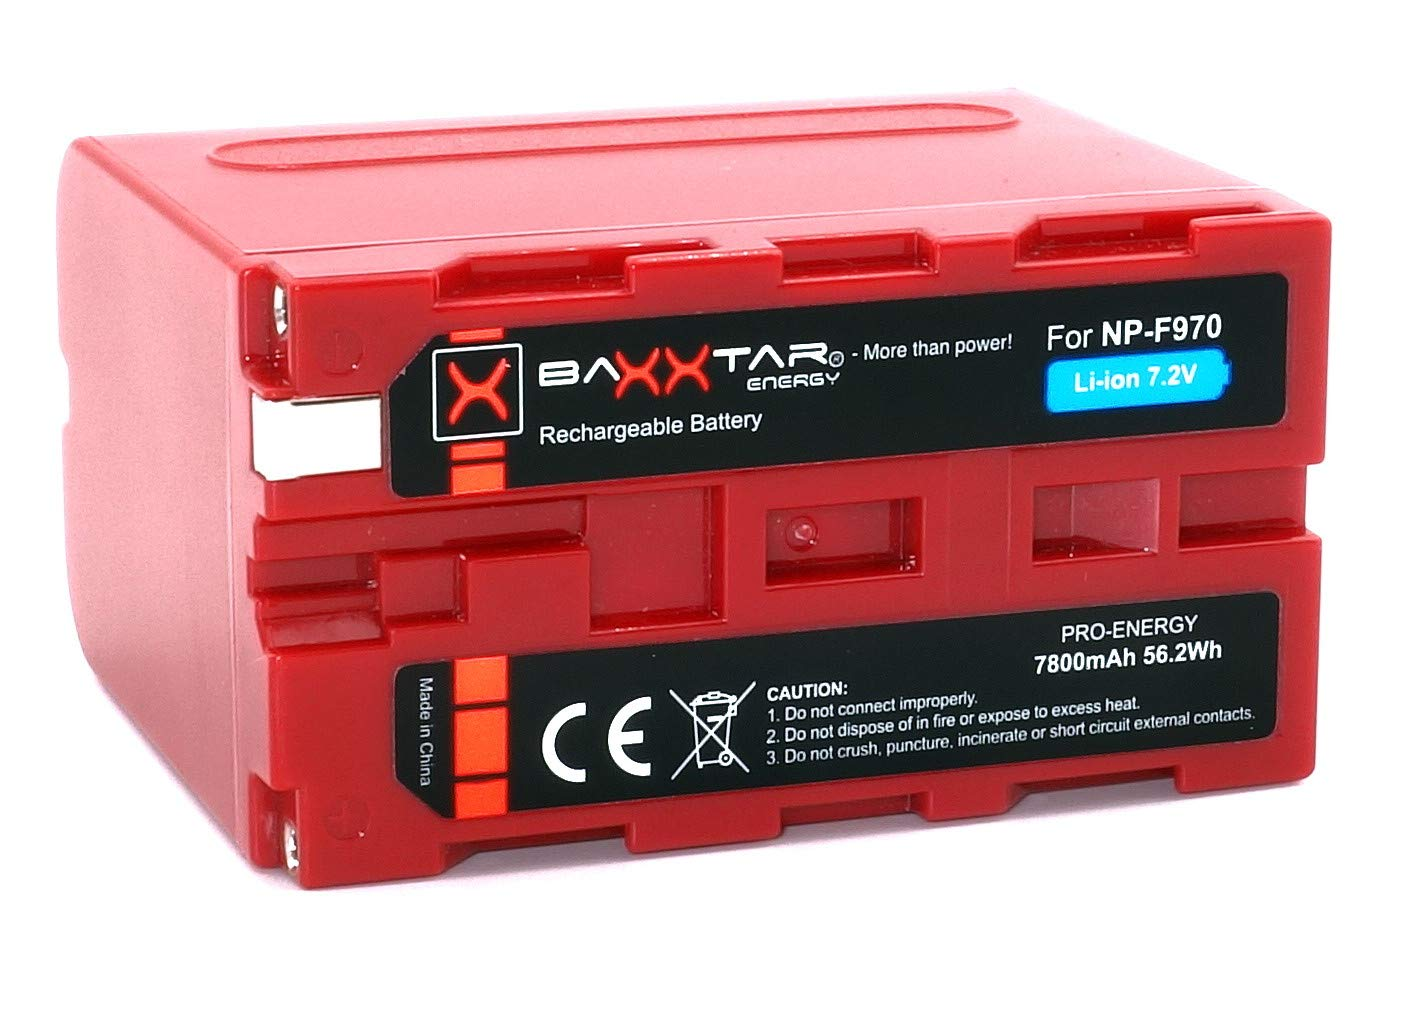 BAXXTAR PRO - Replacement Battery for Sony NP-F970 (with real 7800mAh)